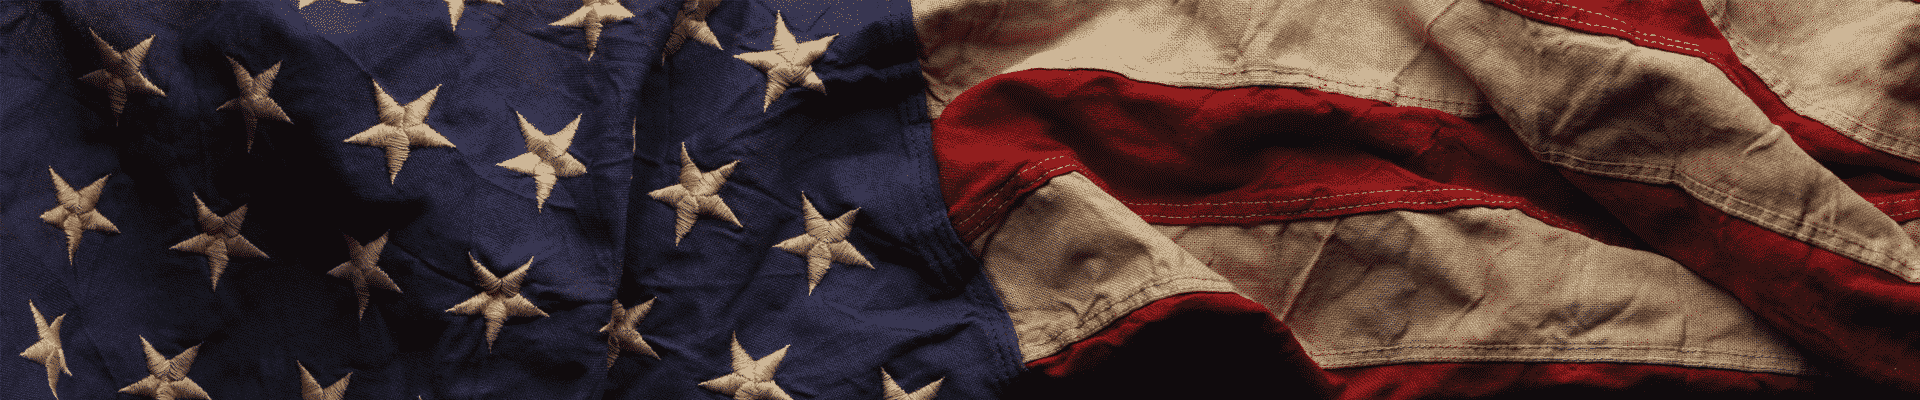 red white and blue vintage american flag banner